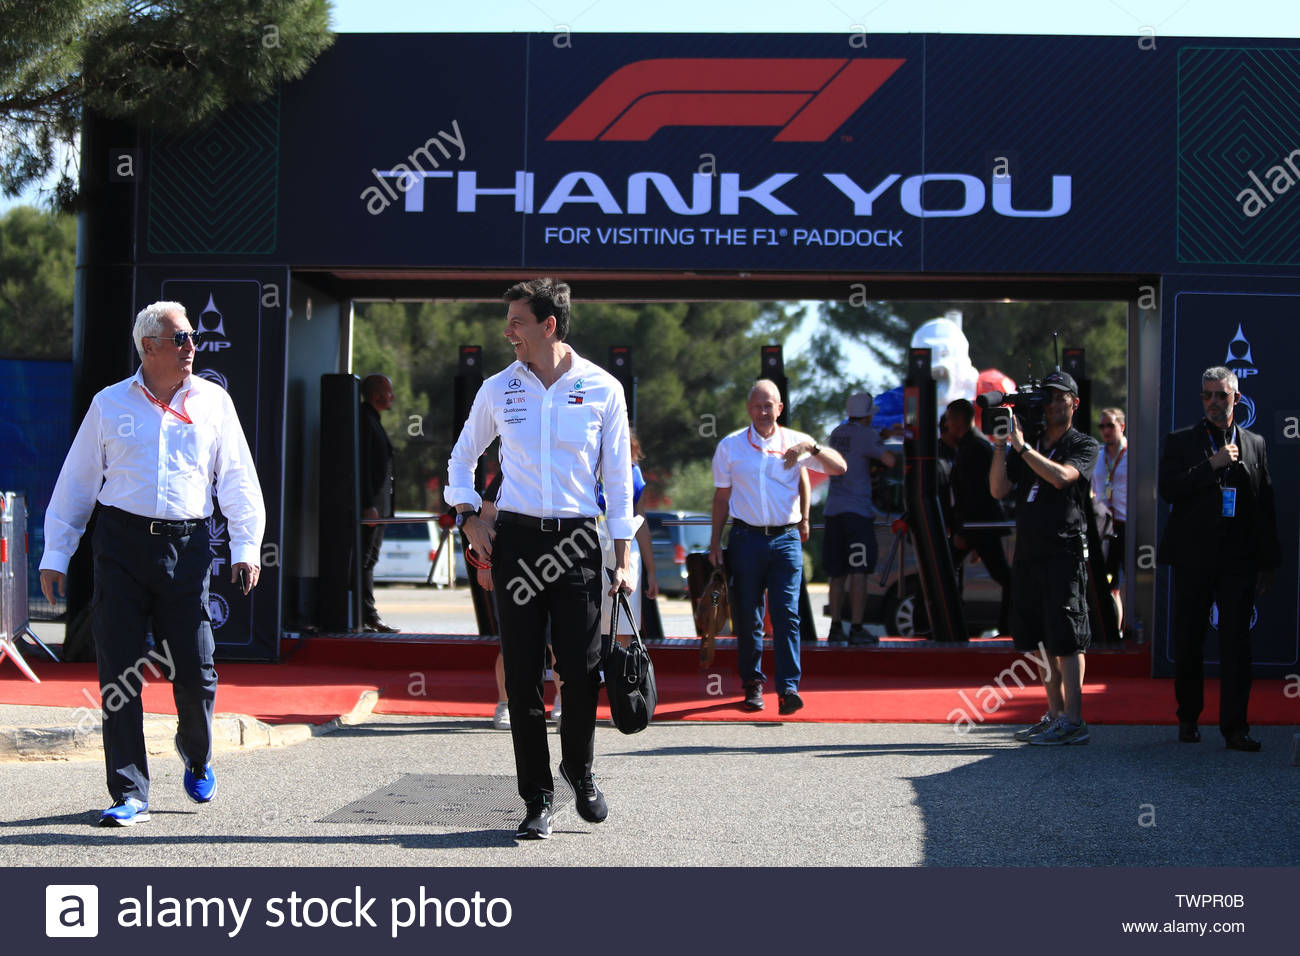 france june 22nd 2019 circuit automobile paul ricard le castellet marseille france fia formula 1 grand prix of france qualifying toto wolff and lawrence stroll arrive to her for qualifying credit action plus sports imagesalamy live news TWPR0B